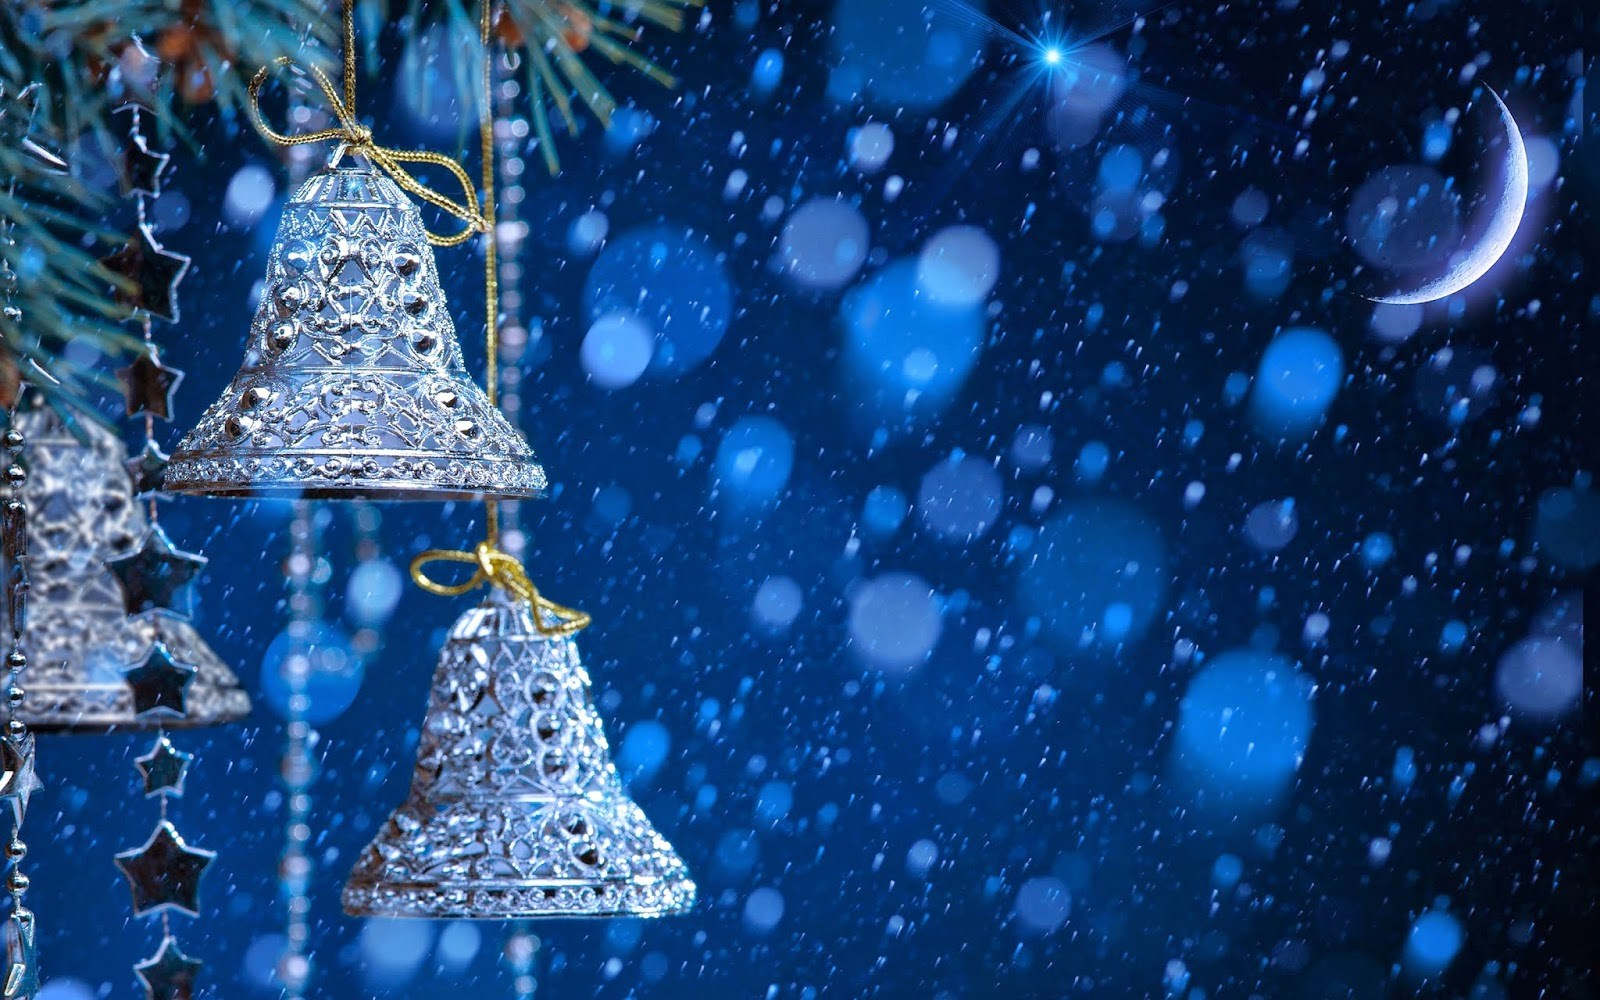 Merry Christmas jingle bells silver with snow fall blue background 1600x1000